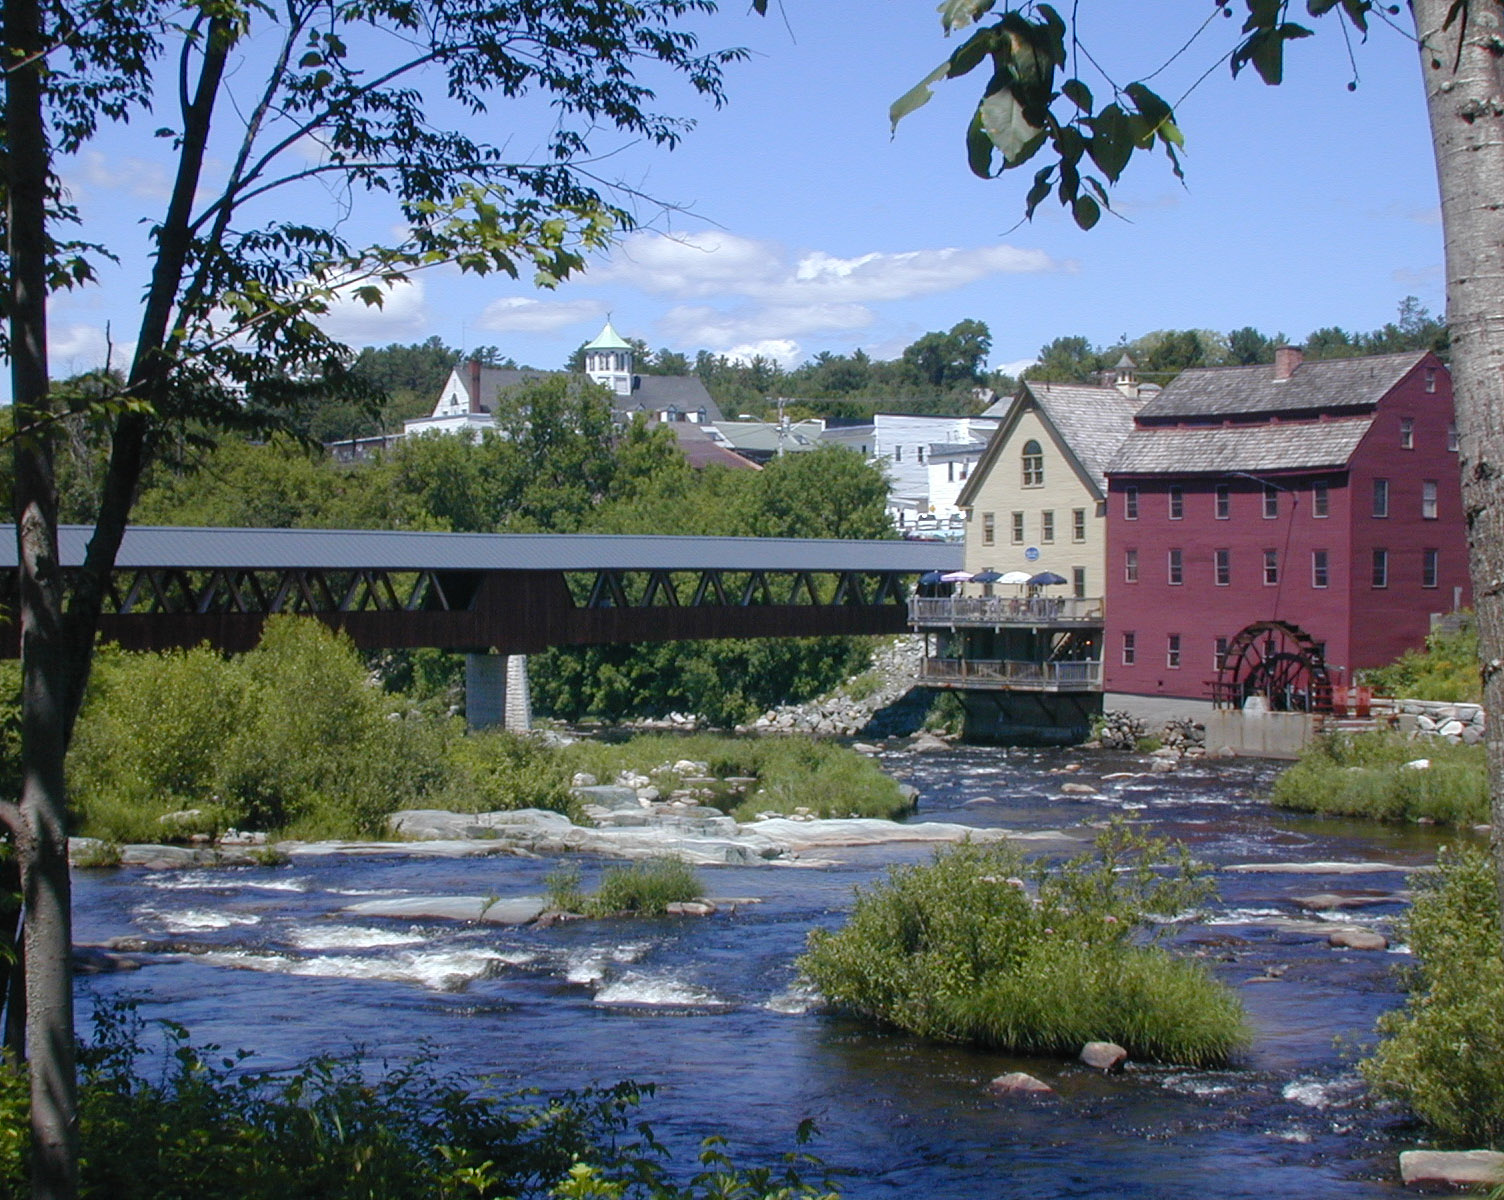 A view of the River Mill Bridge spanning the mighty Ammonusuc River, which flows through the historic town of Littleton, N.H., where the Preservation Conference and Achievement Awards Ceremony were held this year. (Photo by Kris Covey.)